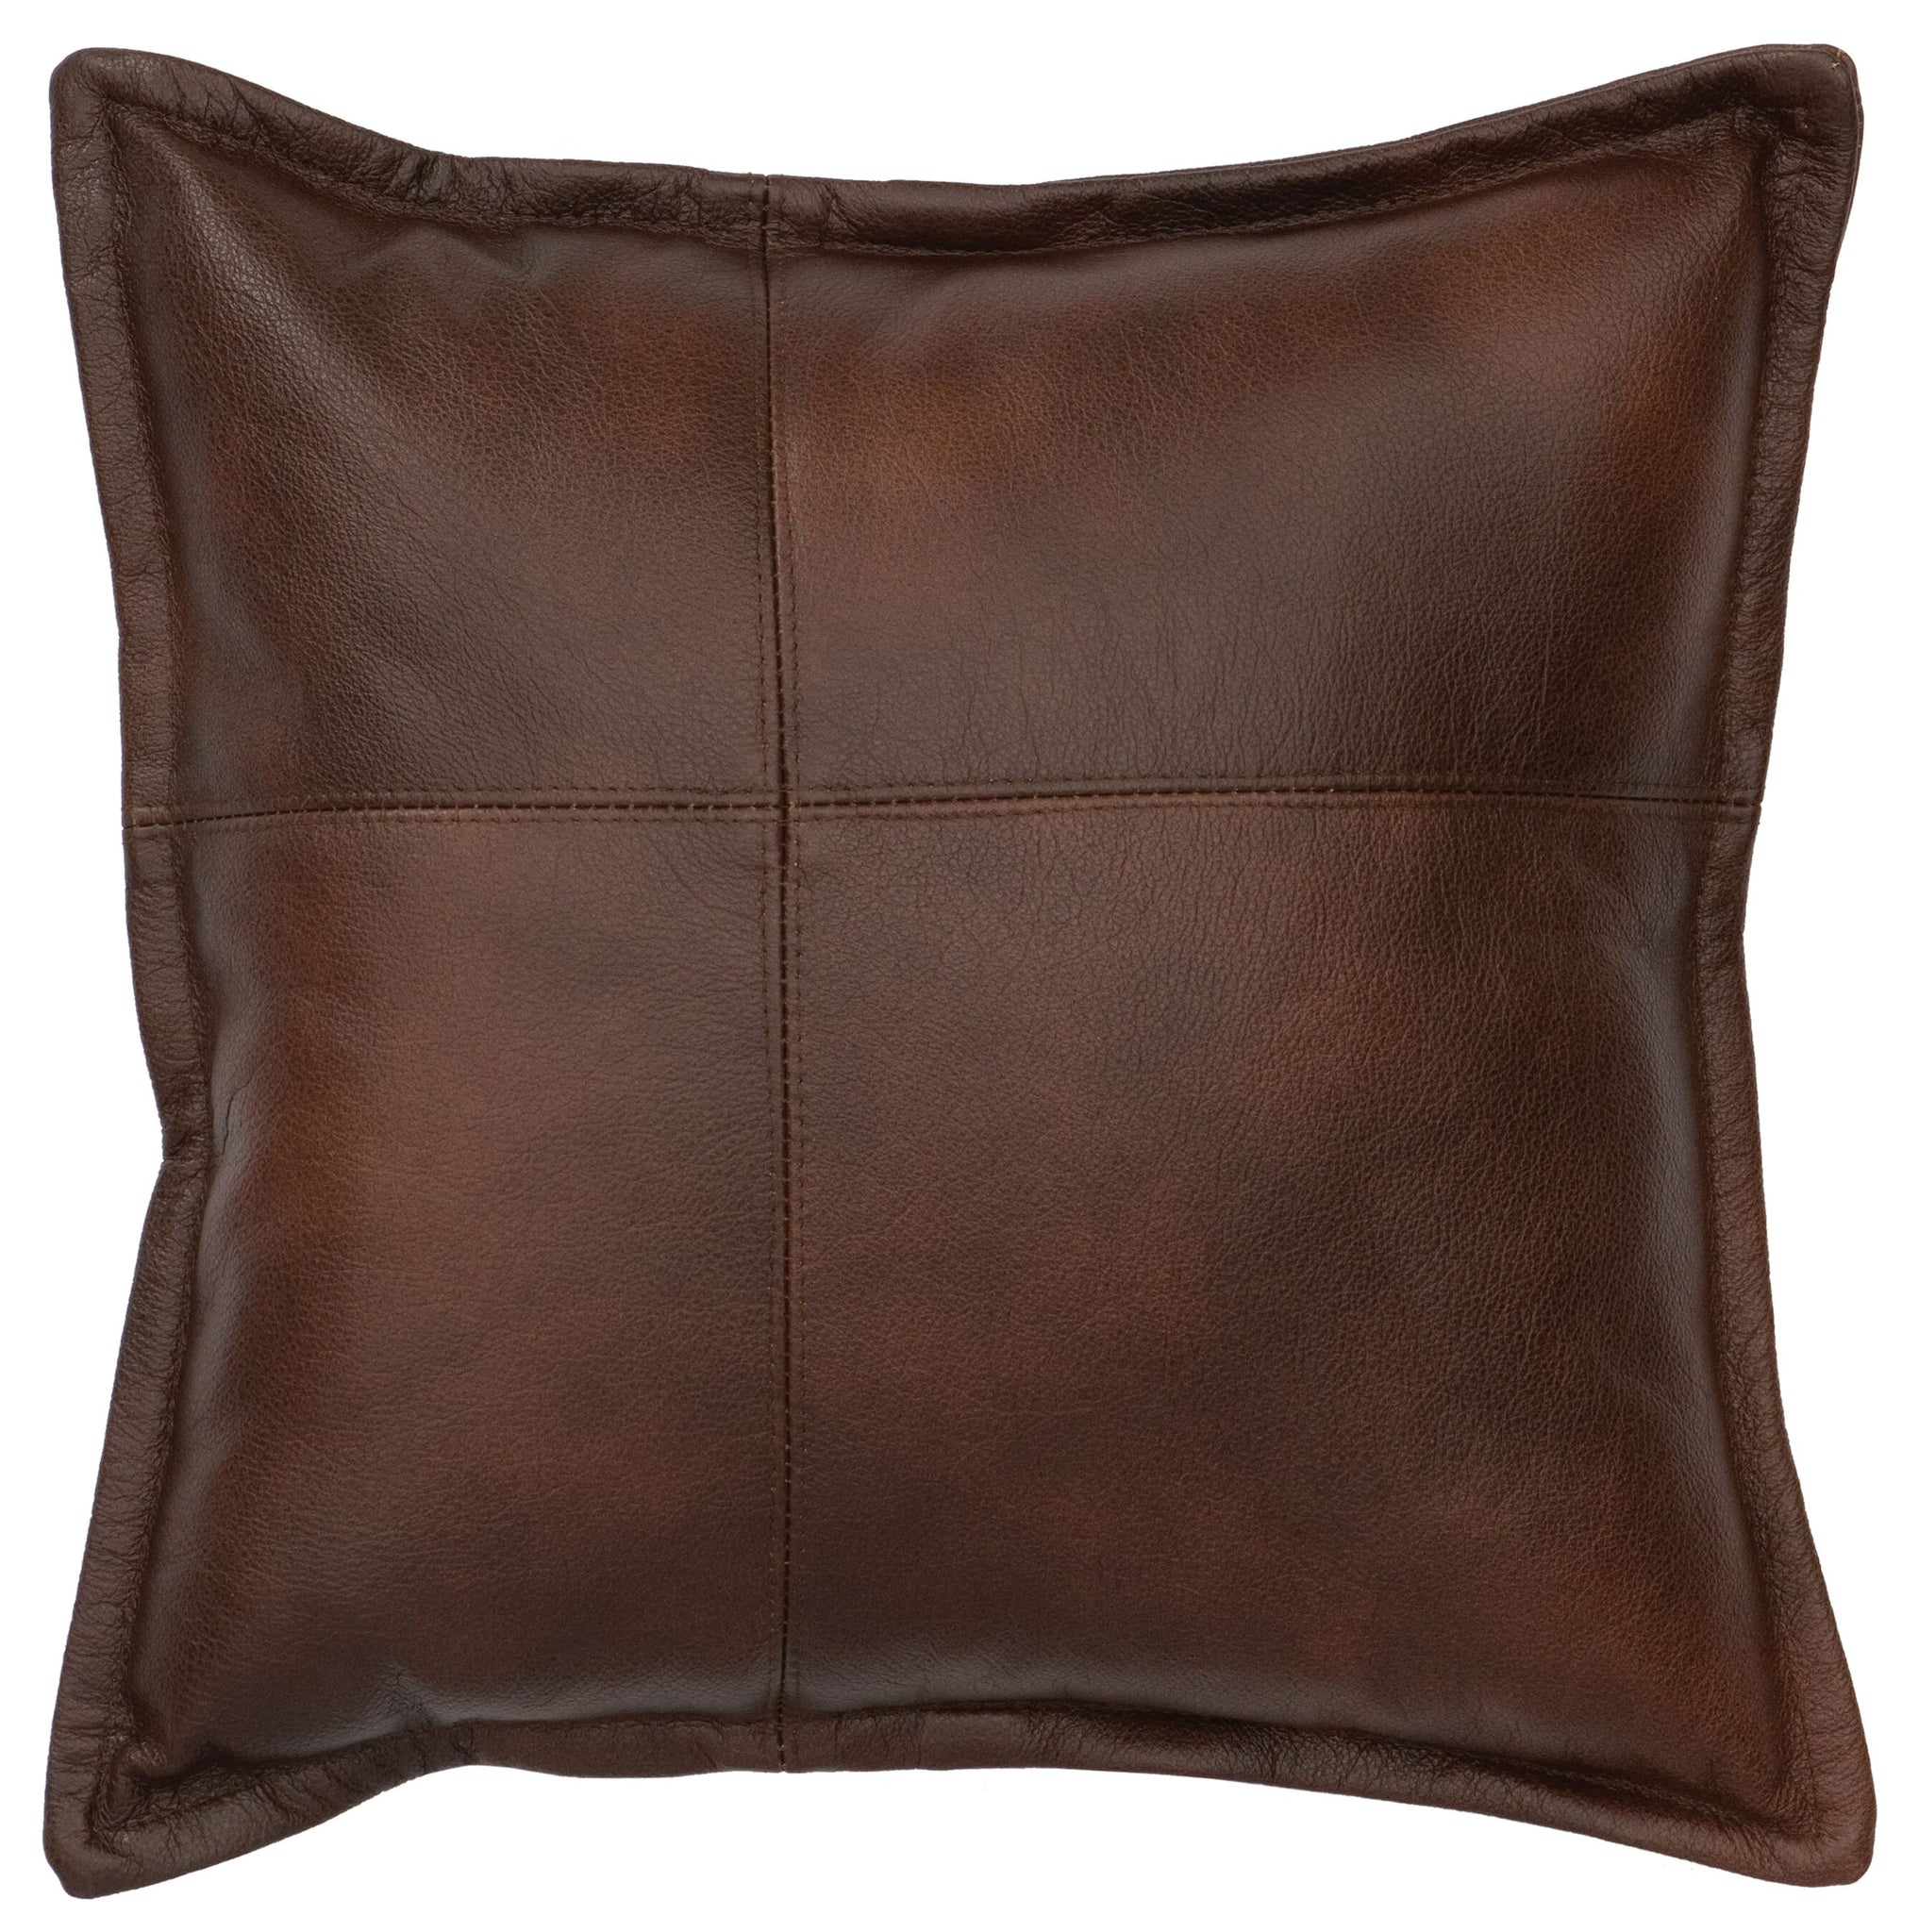 Leather Pillow Wooded River WD80258 - unique linens online